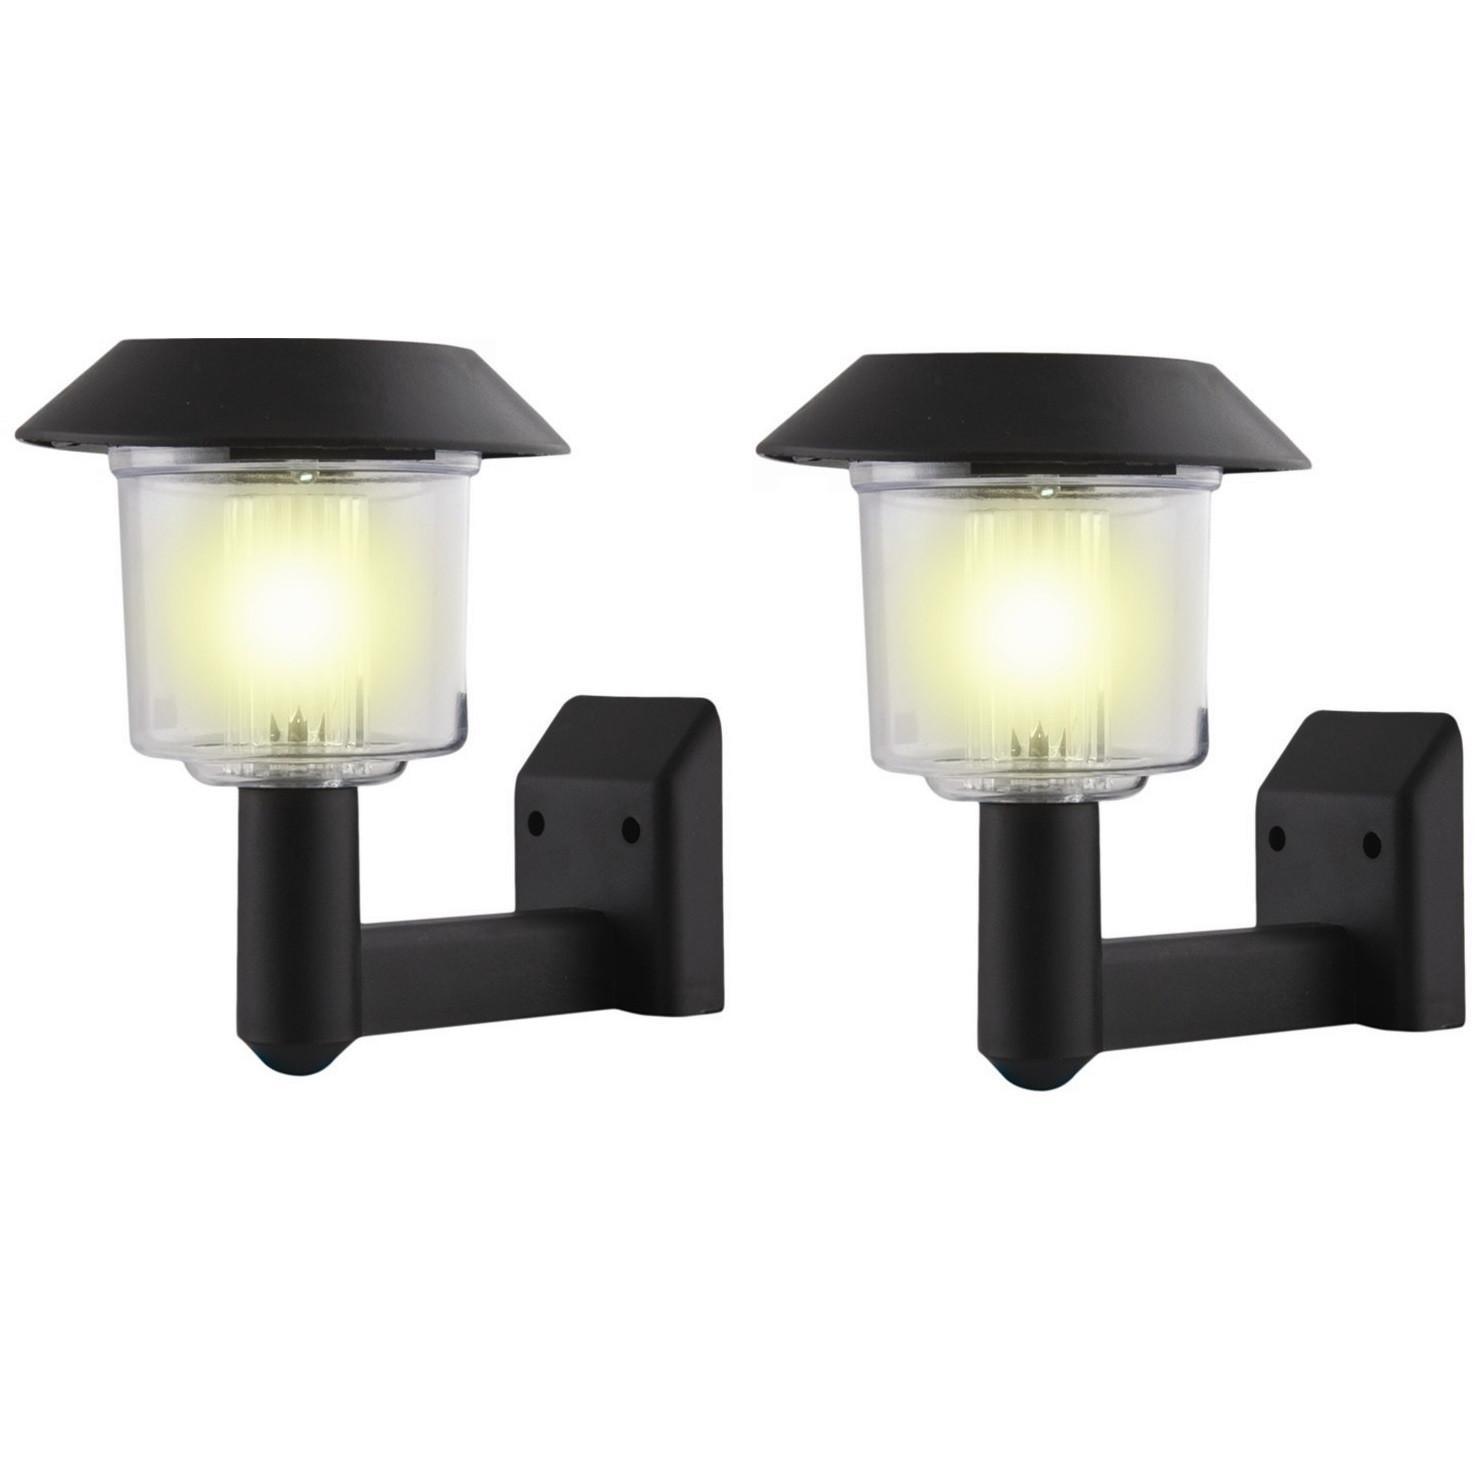 Best ideas about Solar Powered Patio Lighting . Save or Pin 2 x Solar Power Wall Light Fence LED Outdoor Lighting Now.